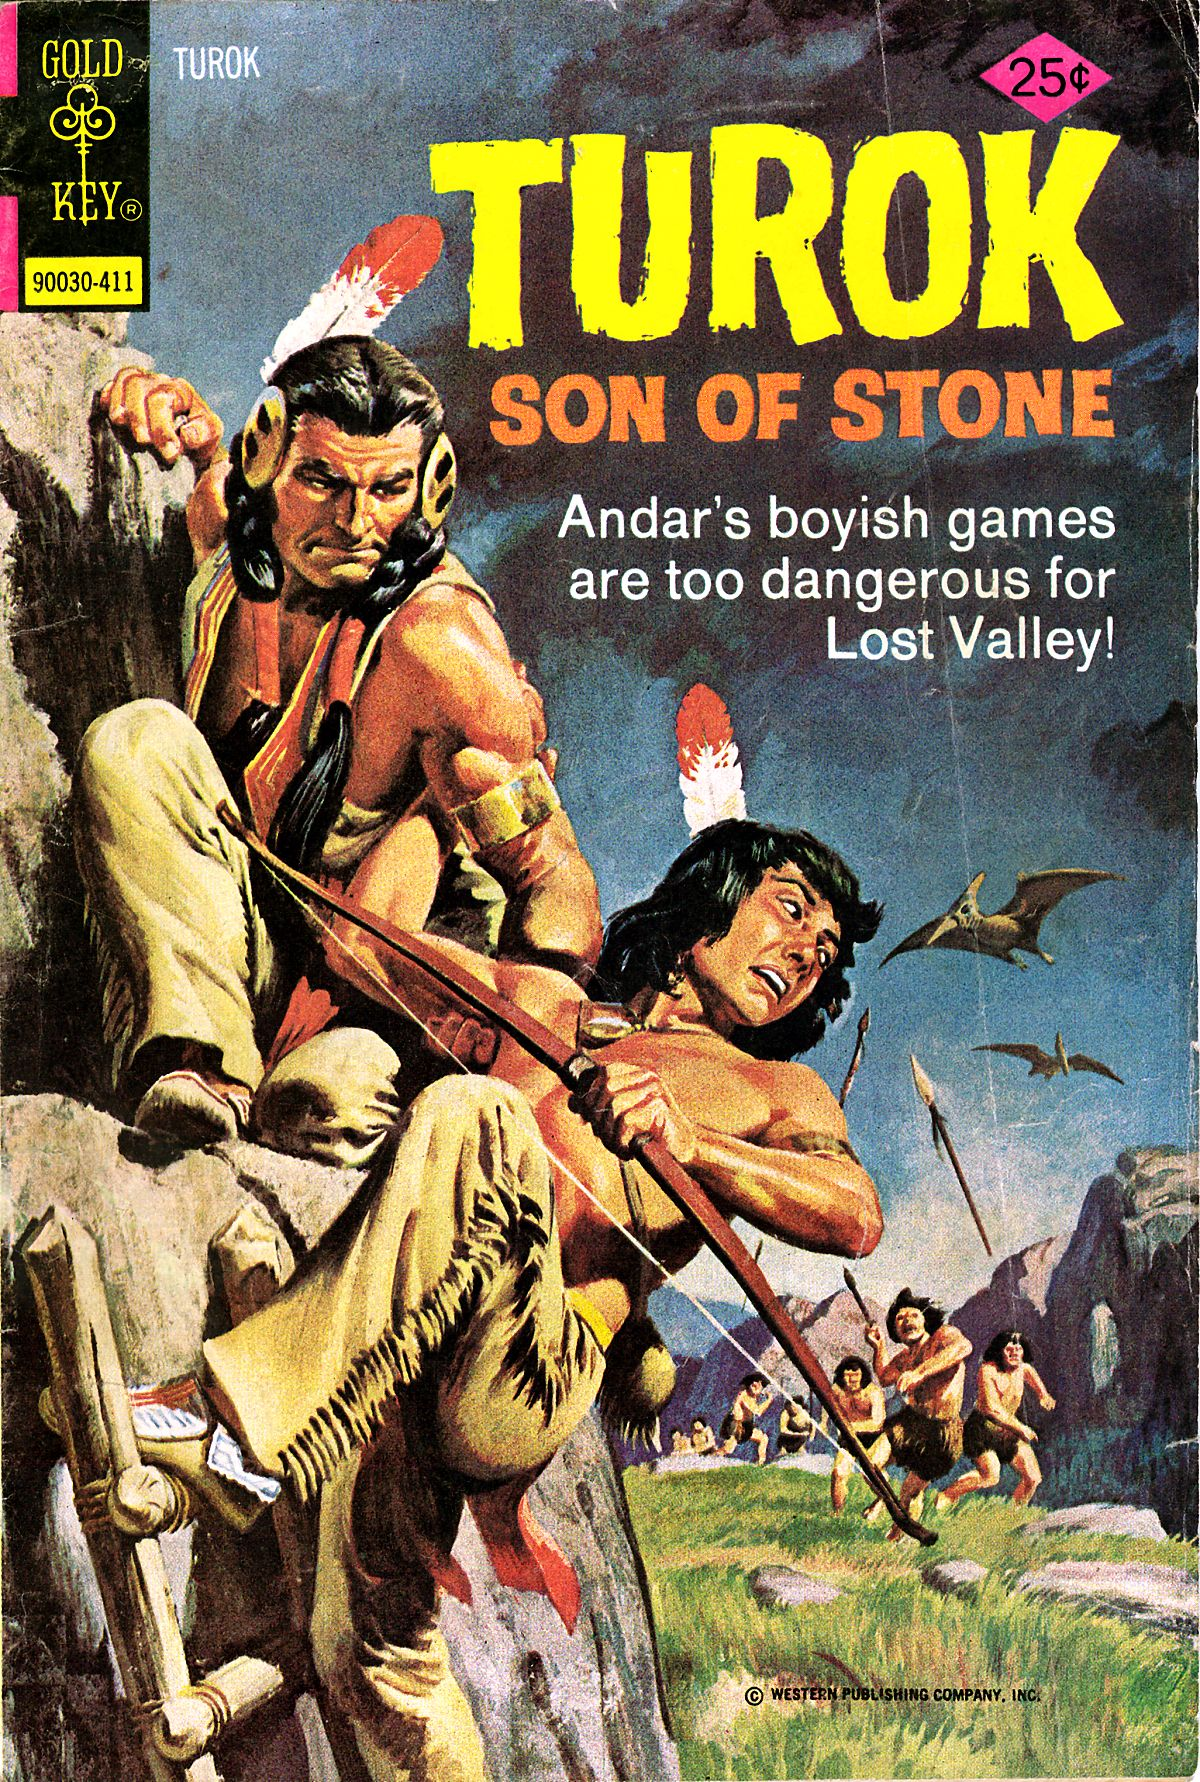 Read online Turok, Son of Stone comic -  Issue #93 - 1